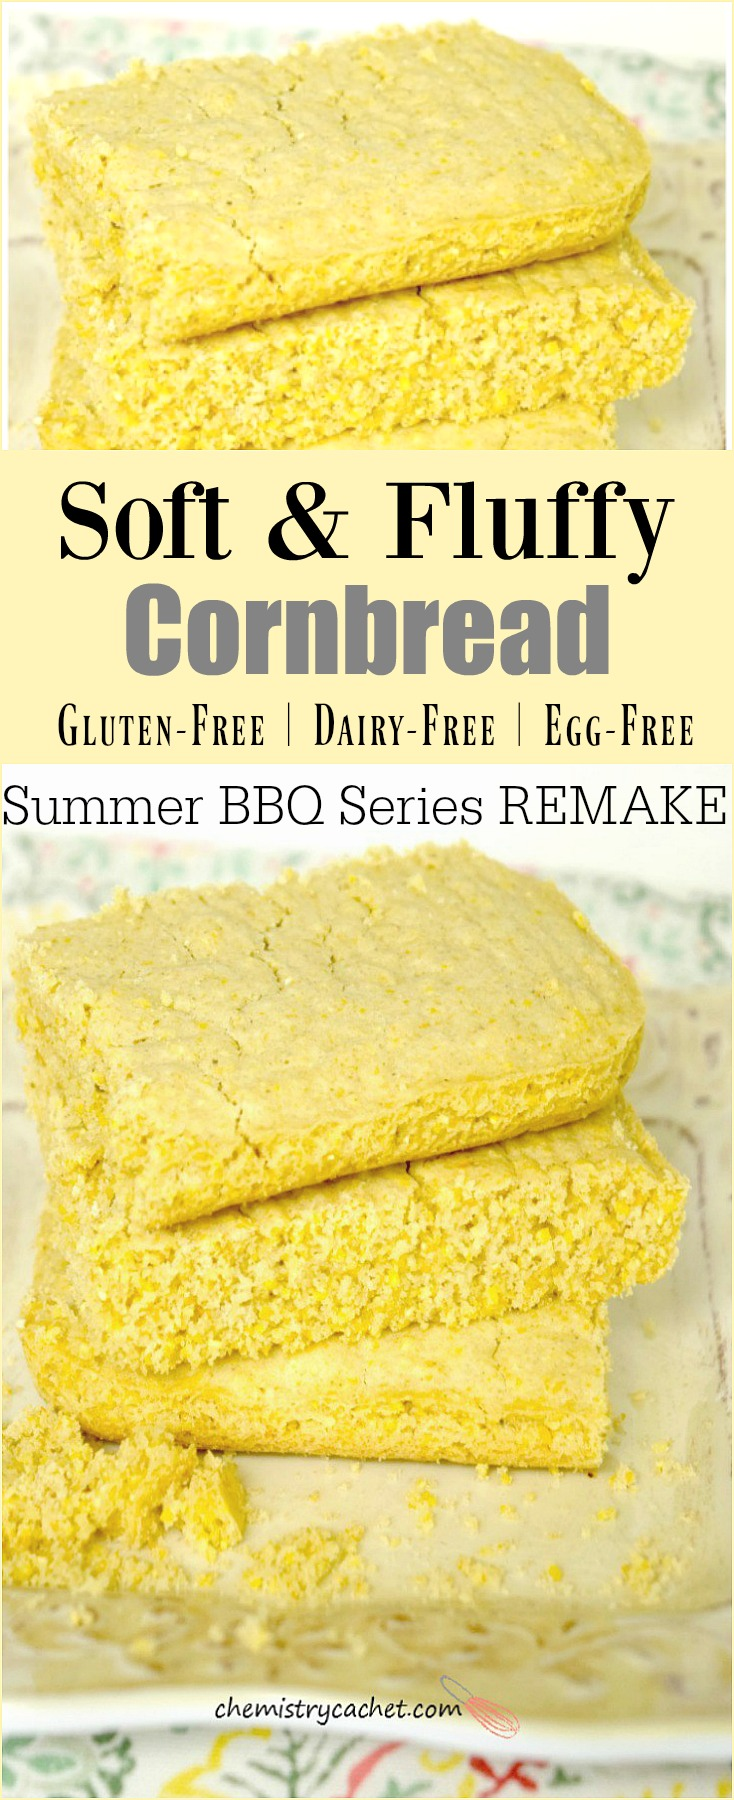 Dairy-Free Gluten-Free Cornbread recipe that is perfectly soft and fluffy! Bonus, it's also egg-free! And it is the perfect substitution for a summer bbq for anyone with food allergies! See more fun details on chemistrycachet.com